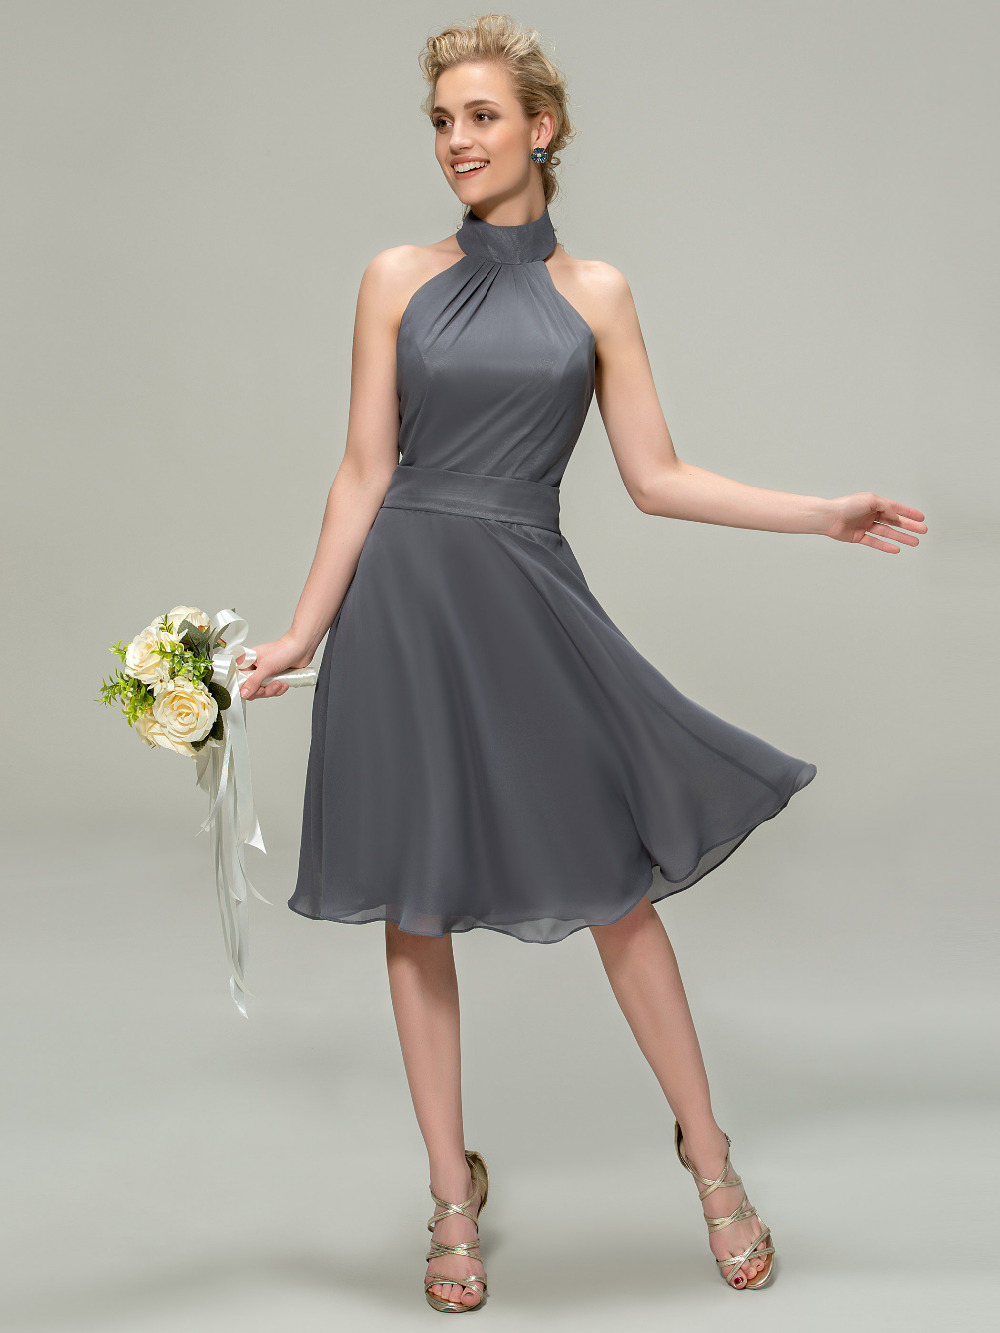 Aliexpress buy new gray chiffon short bridesmaid dress 2016 aliexpress buy new gray chiffon short bridesmaid dress 2016 empire waist halter neck vestido curto ruched knee length wedding party gowns from ombrellifo Gallery